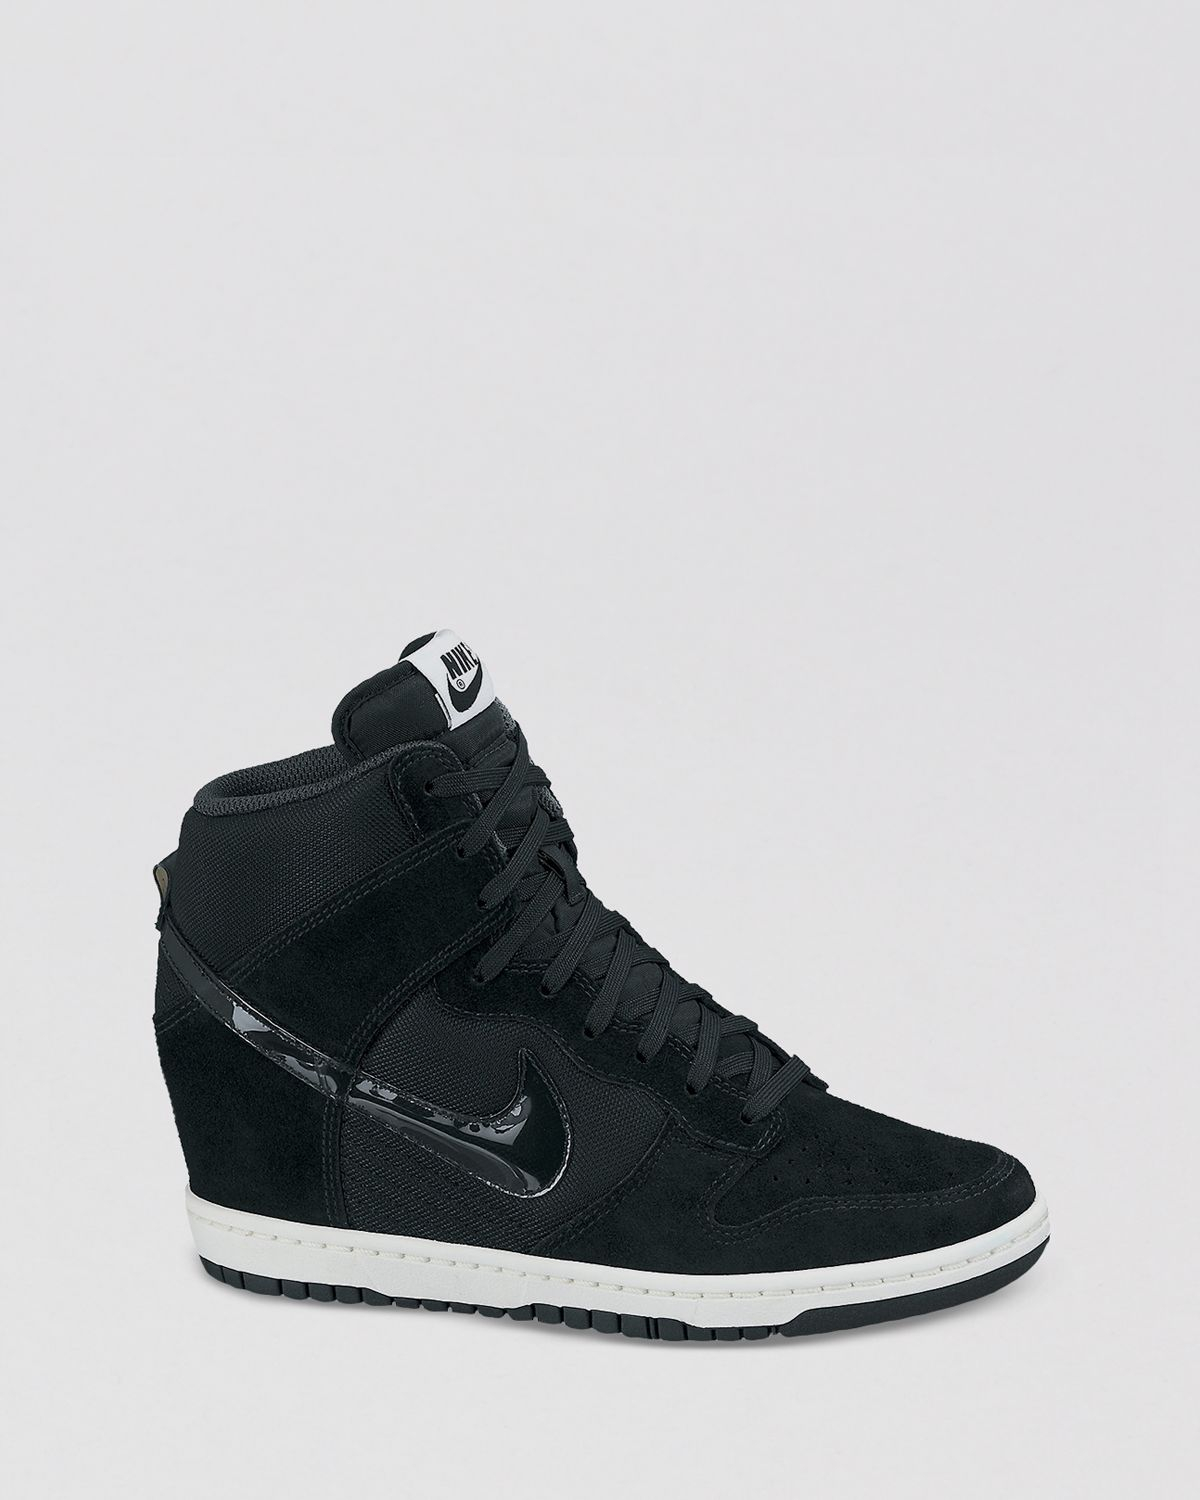 new concept 77ac6 446ce ... sky hi essential black 436ff b1a61  buy gallery. previously sold at  bloomingdales womens wedge sneakers womens nike dunk womens nike dunk